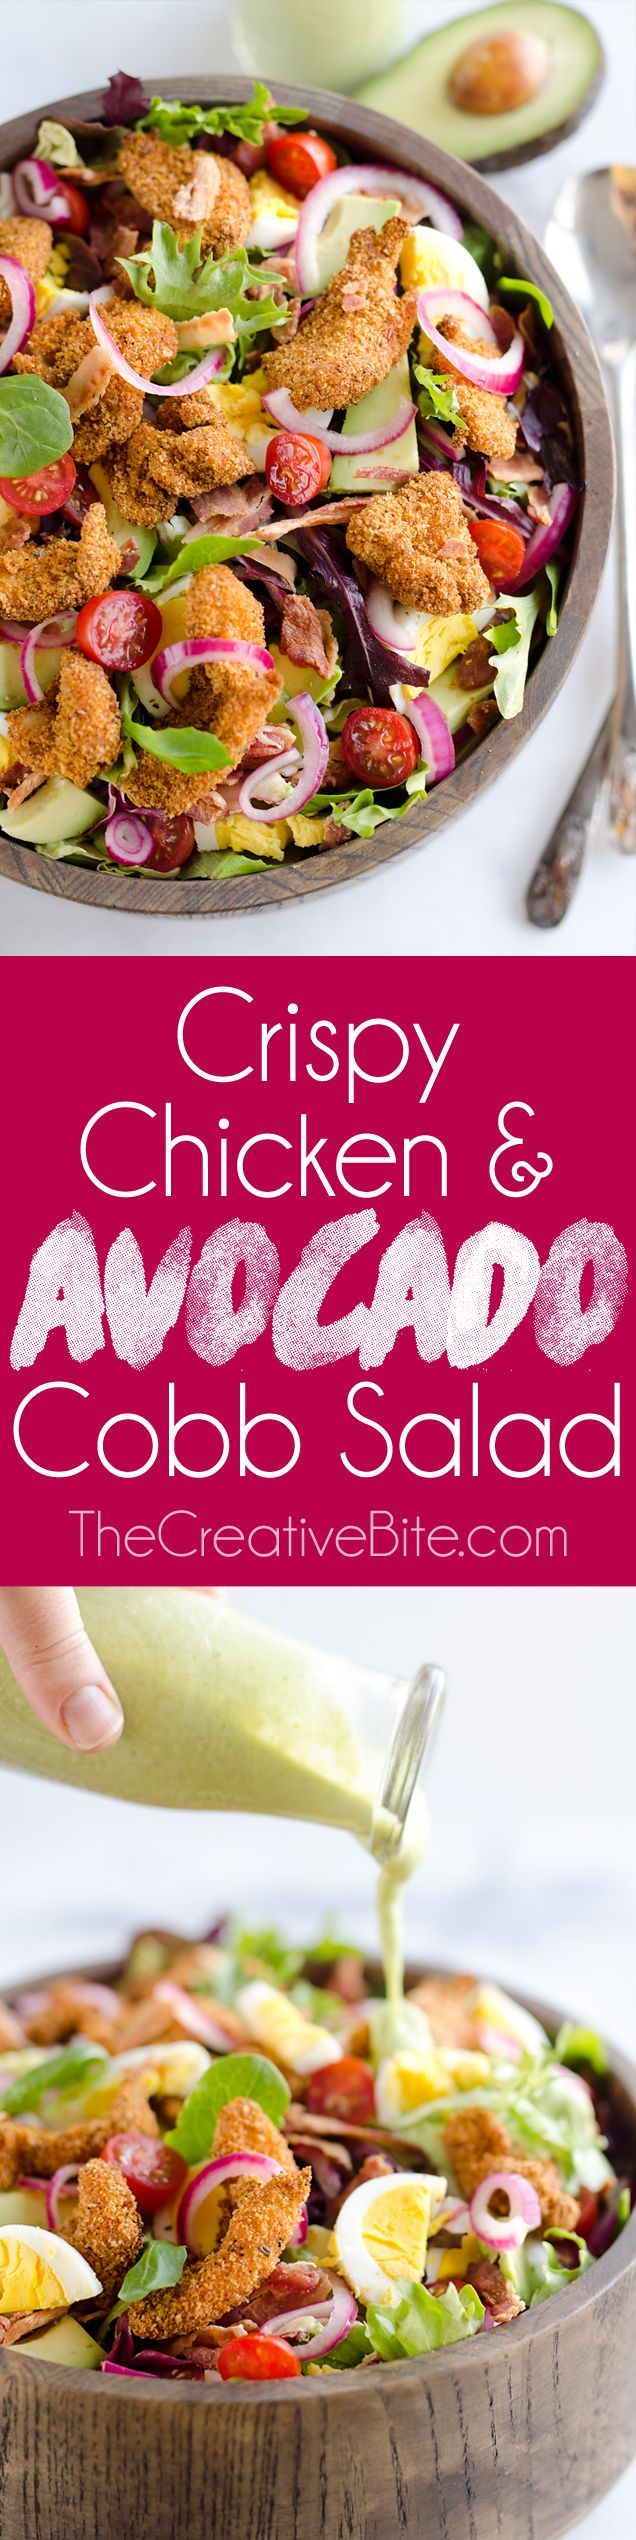 Crispy Chicken & Avocado Cobb Salad is an easy & healthy 15 minute salad made with Gold'n Plump SHAKERS in your Airfryer for a dinner idea bursting with flavor and crunch! http://www.thecreativebite.com/crispy-chicken-avocado-cobb-salad/?utm_campaign=coschedule&utm_source=pinterest&utm_medium=Danielle%20%7C%20The%20Creative%20Bite&utm_content=Crispy%20Chicken%20and%20Avocado%20Cobb%20Salad